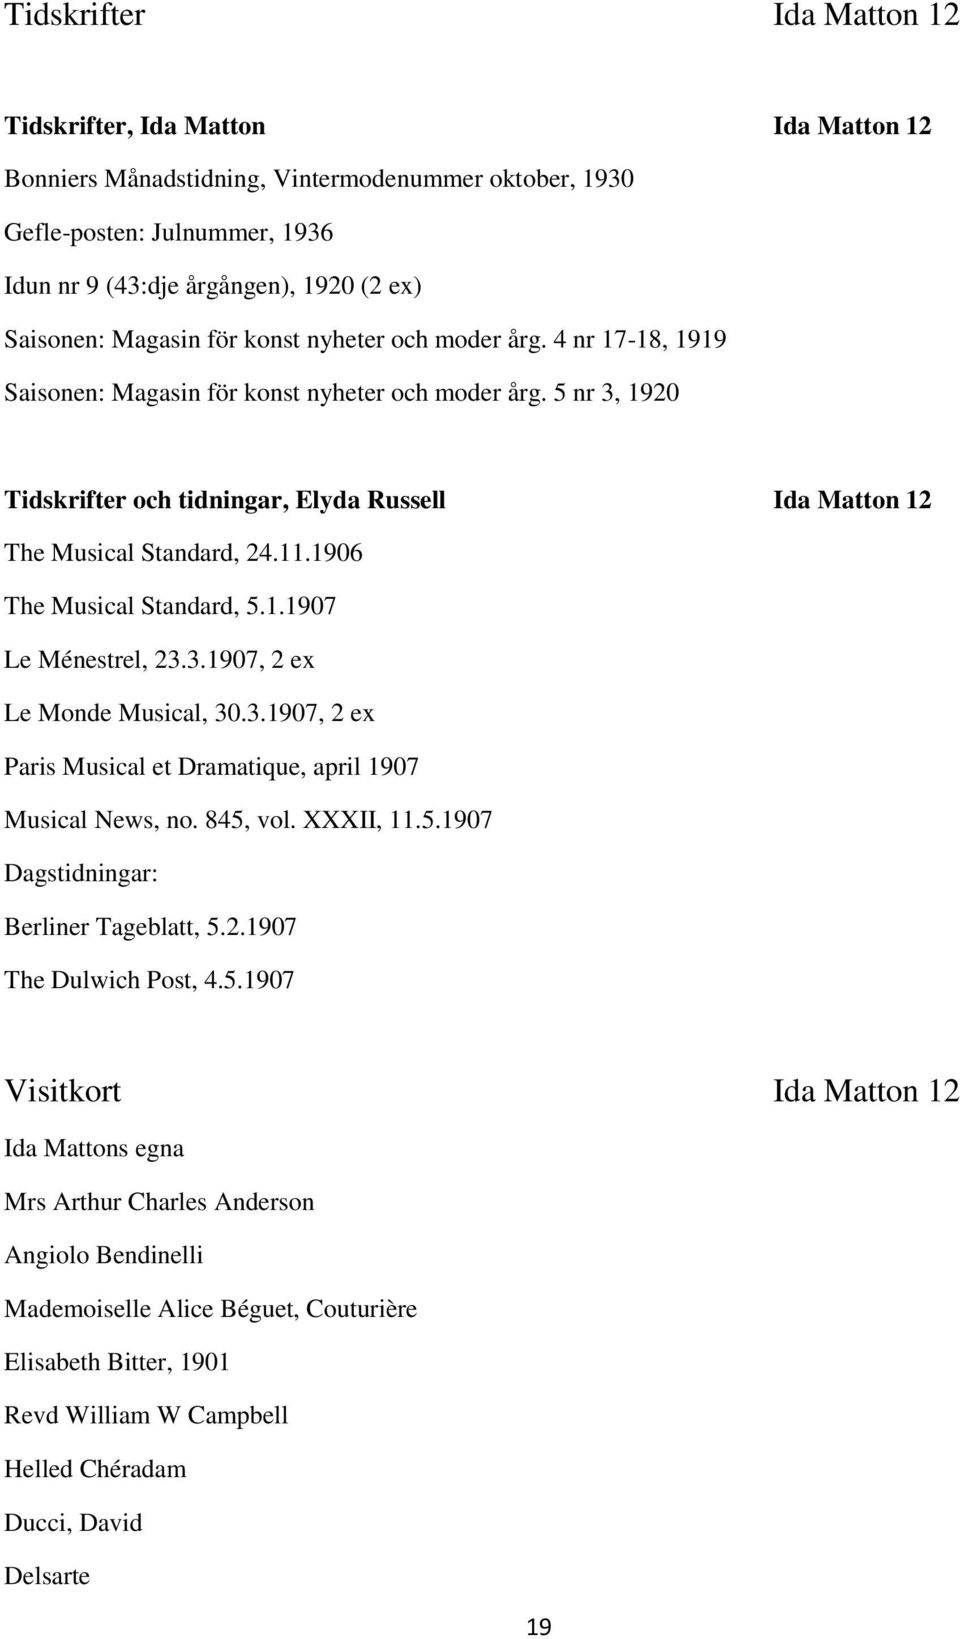 5 nr 3, 1920 Tidskrifter och tidningar, Elyda Russell Ida Matton 12 The Musical Standard, 24.11.1906 The Musical Standard, 5.1.1907 Le Ménestrel, 23.3.1907, 2 ex Le Monde Musical, 30.3.1907, 2 ex Paris Musical et Dramatique, april 1907 Musical News, no.